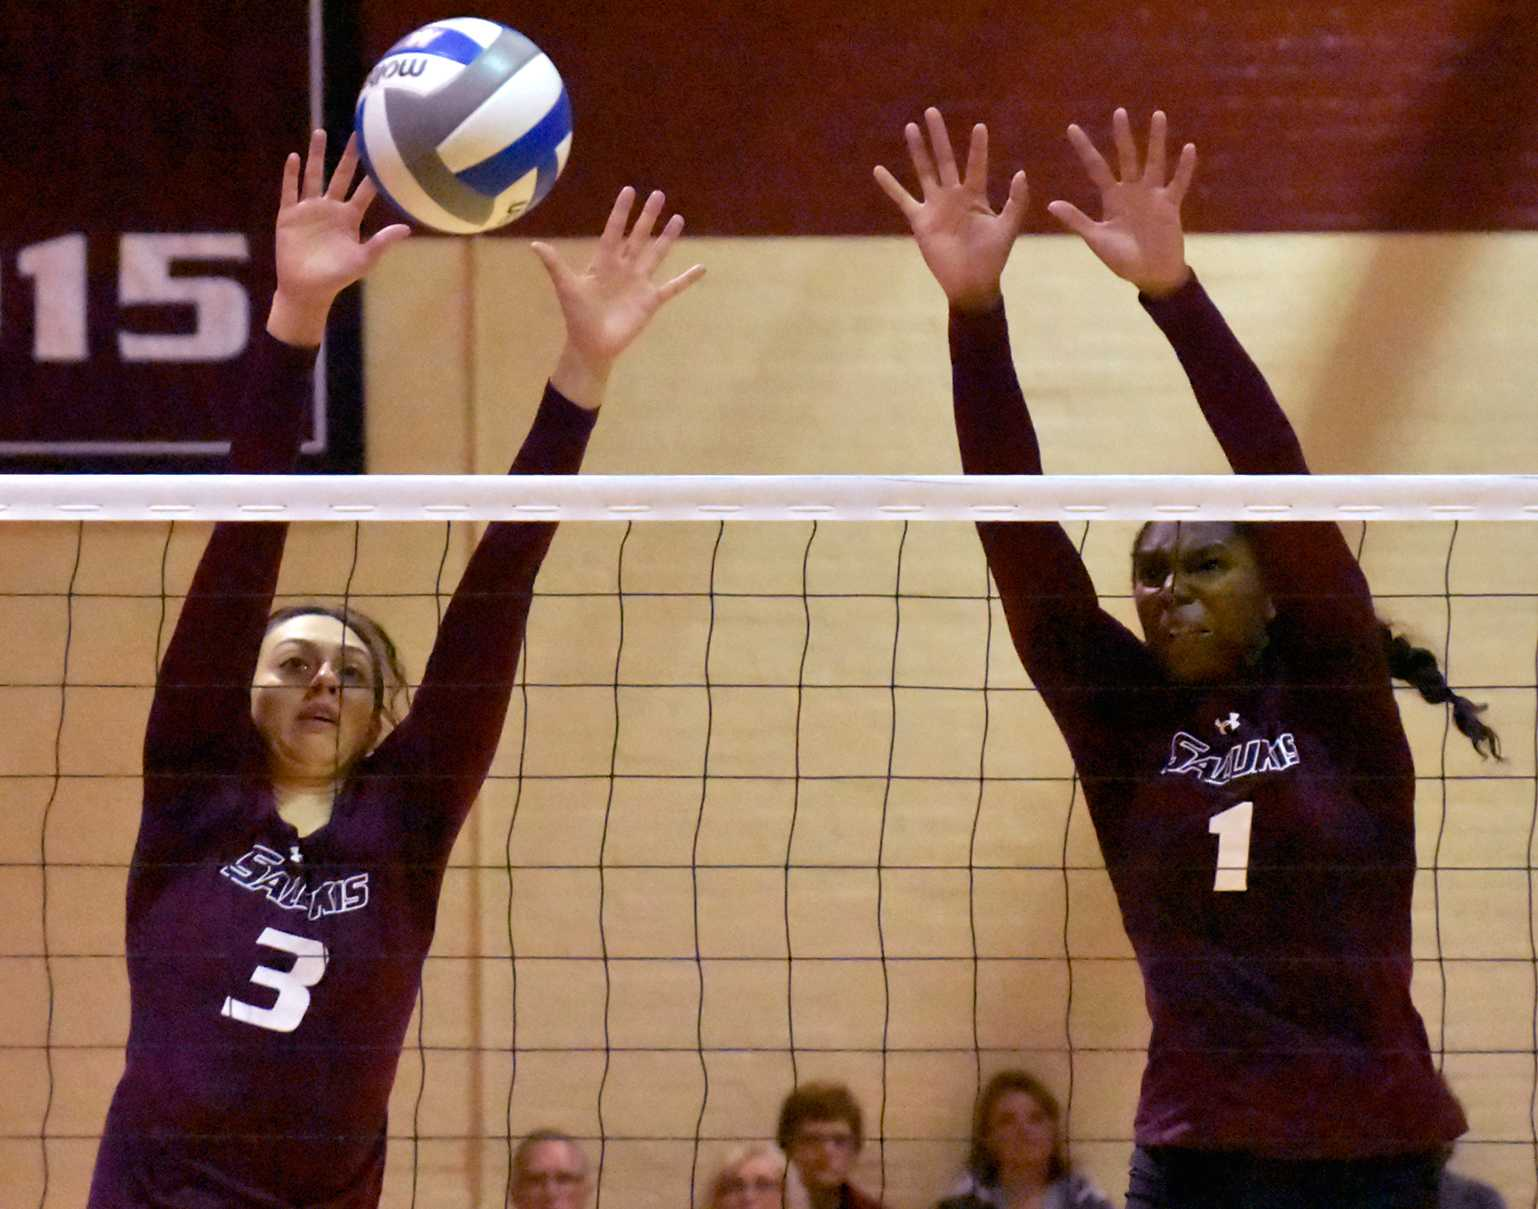 Senior hitter Meg Viggars, left, and junior middle hitter Kolby Meeks go for a block during SIU's 3-1 victory over the Drake Bulldogs on Saturday, Sept. 24, 2016, at Davies Gym (Sean Carley   @SCarleyDE)